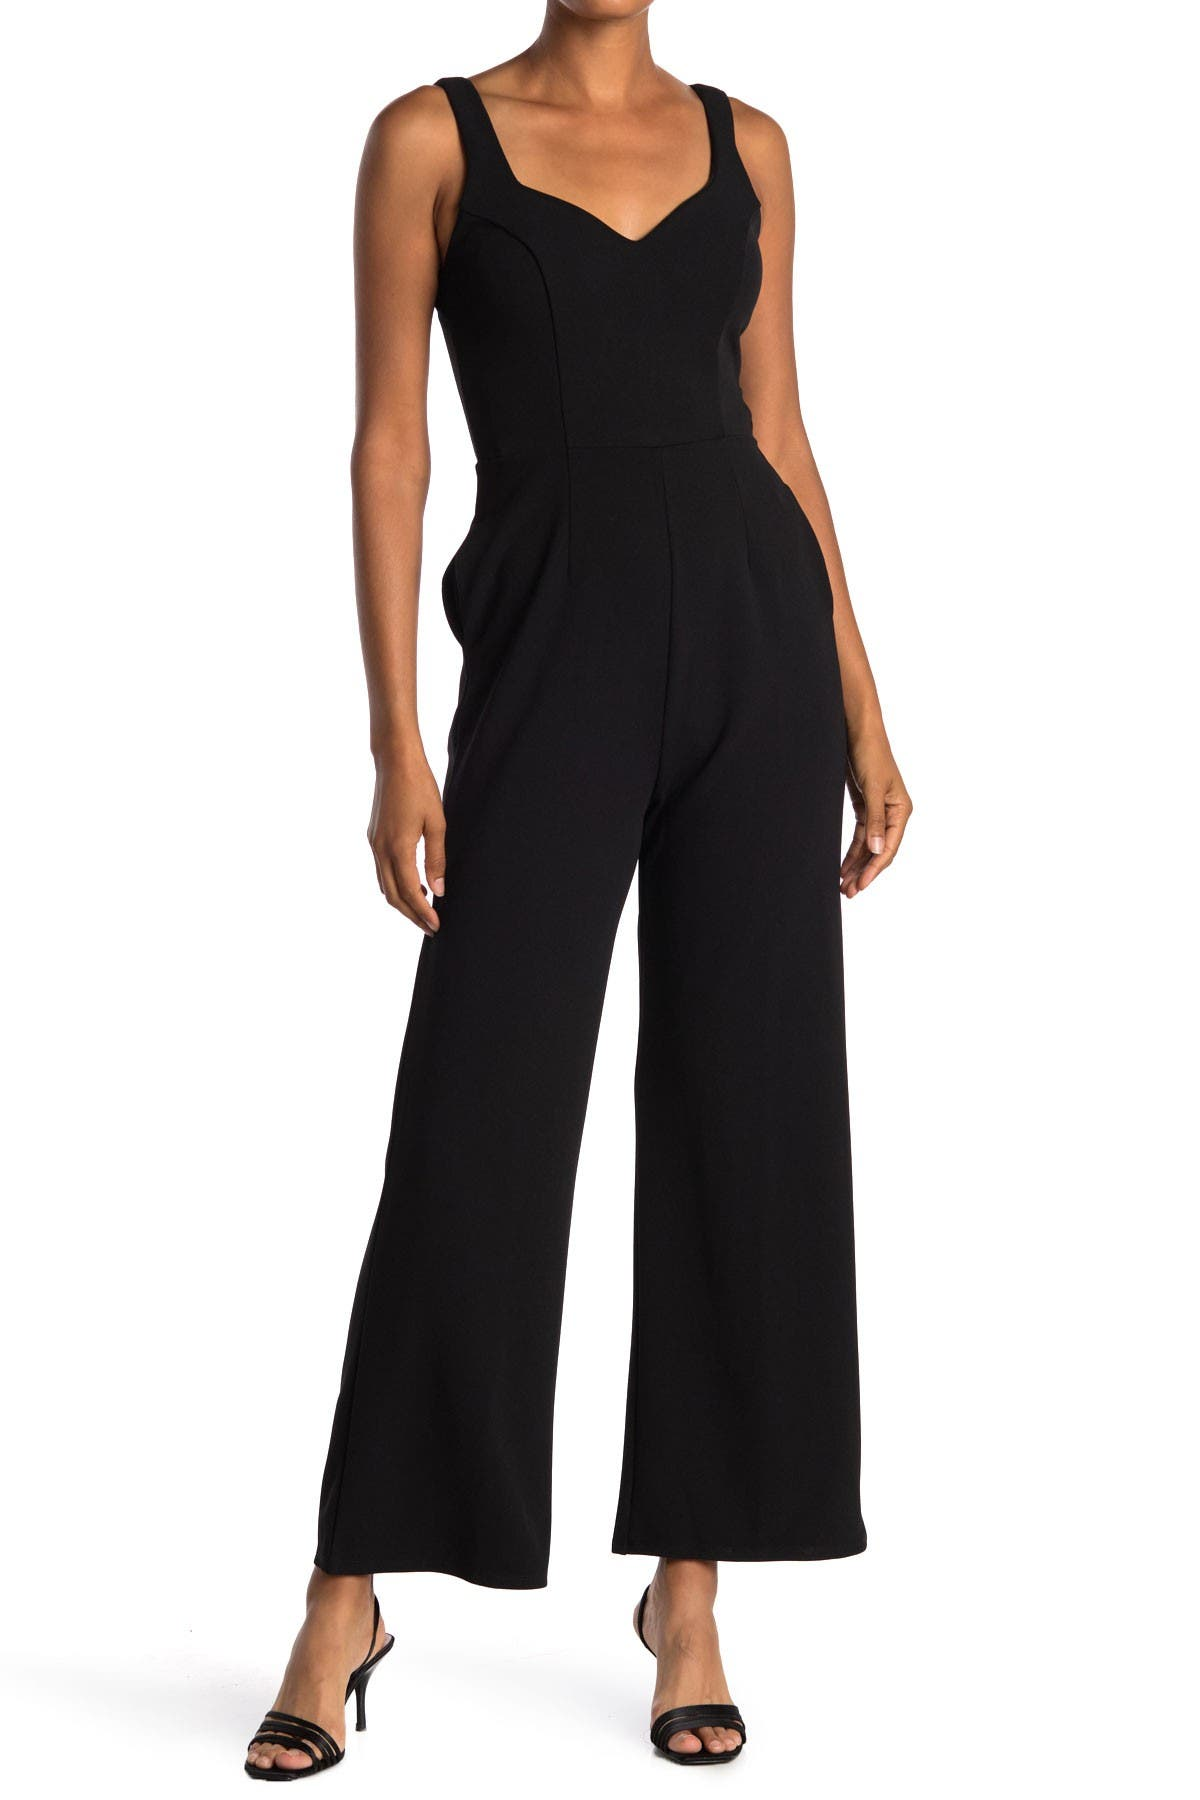 Image of ROW A Sweetheart Neckline Jumpsuit